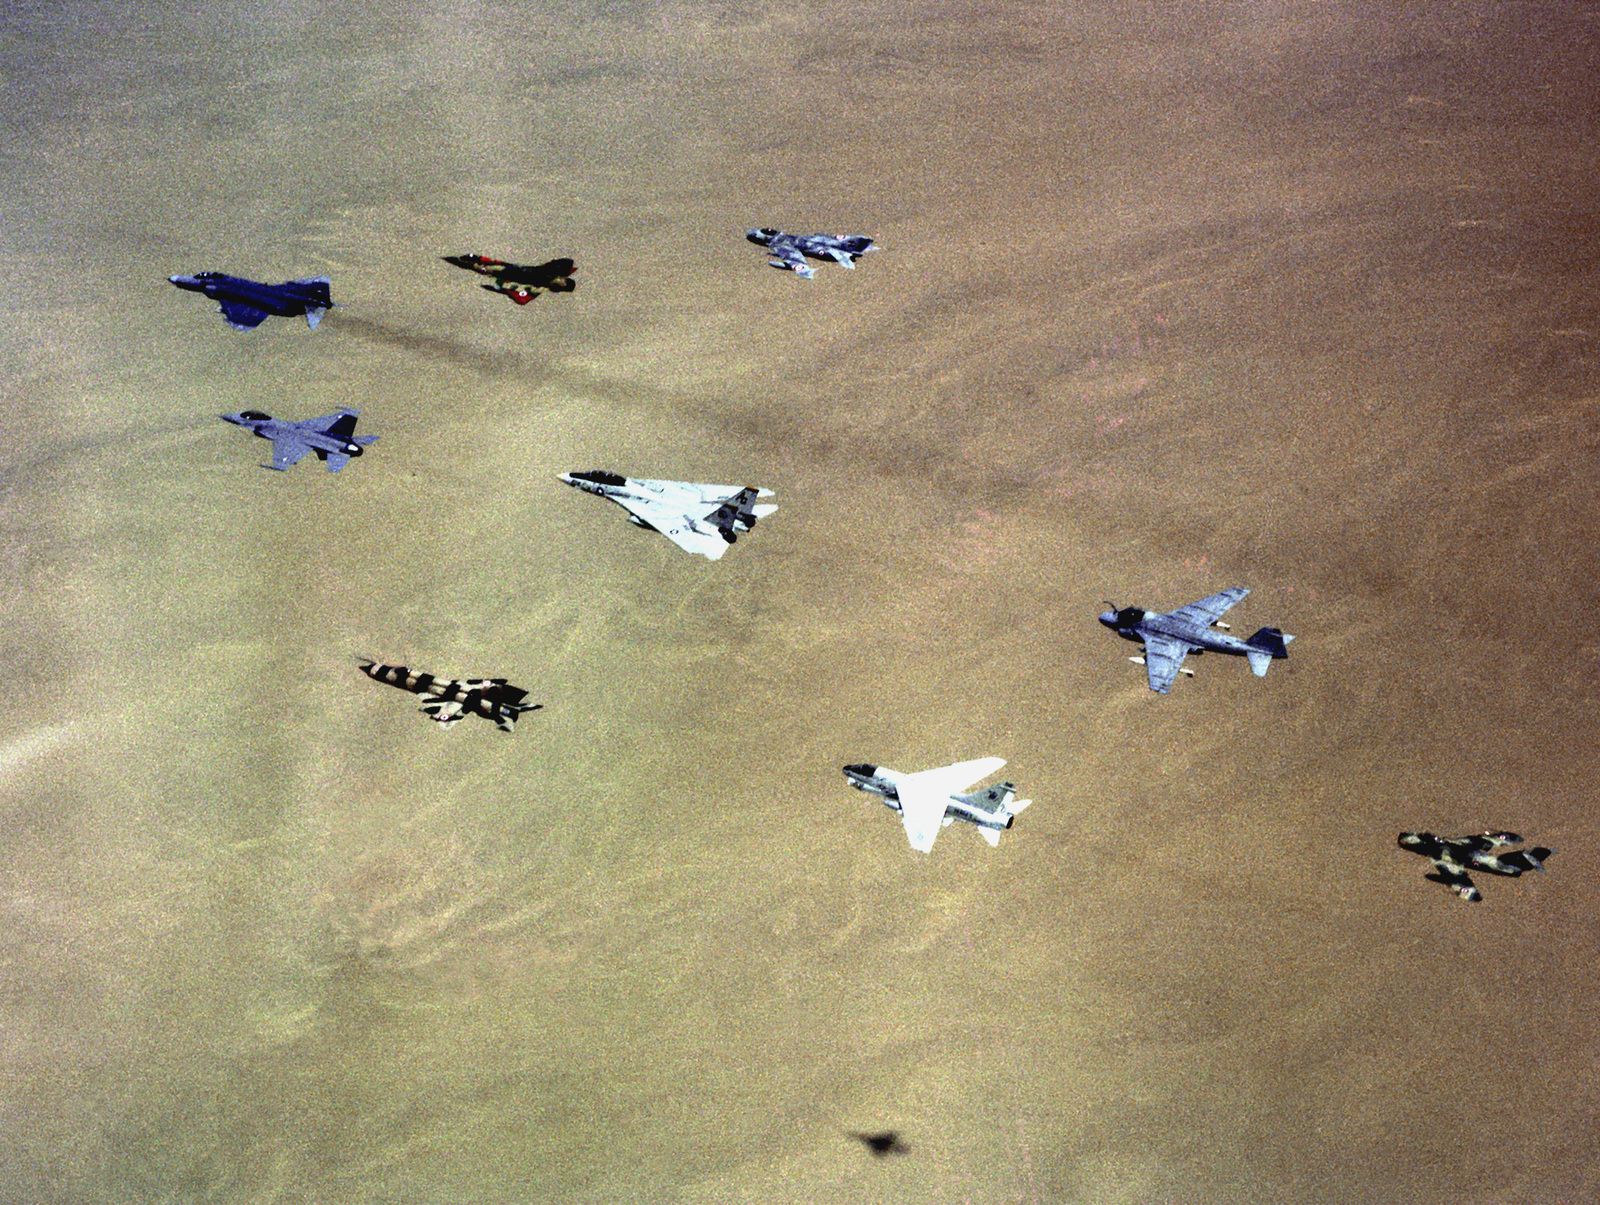 An air-to-air view of a joint formation of aircraft participating in the multi-national exercise Bright Star '83. The aircraft are, clockwise from the top: Egyptian air force MiG-19 Farmer, U.S. Navy A-6 Intruder, Egyptian air force MiG-17 Fresco, U.S. Navy A-7 Corsair II, Egyptian air force MiG-21 Fishbed, Egyptian air force F-16 Fighting Falcon, Egyptian air force F-4 Phantom II, Egyptian air force Mirage 2000, and a U.S. Navy F-14 Tomcat in the center